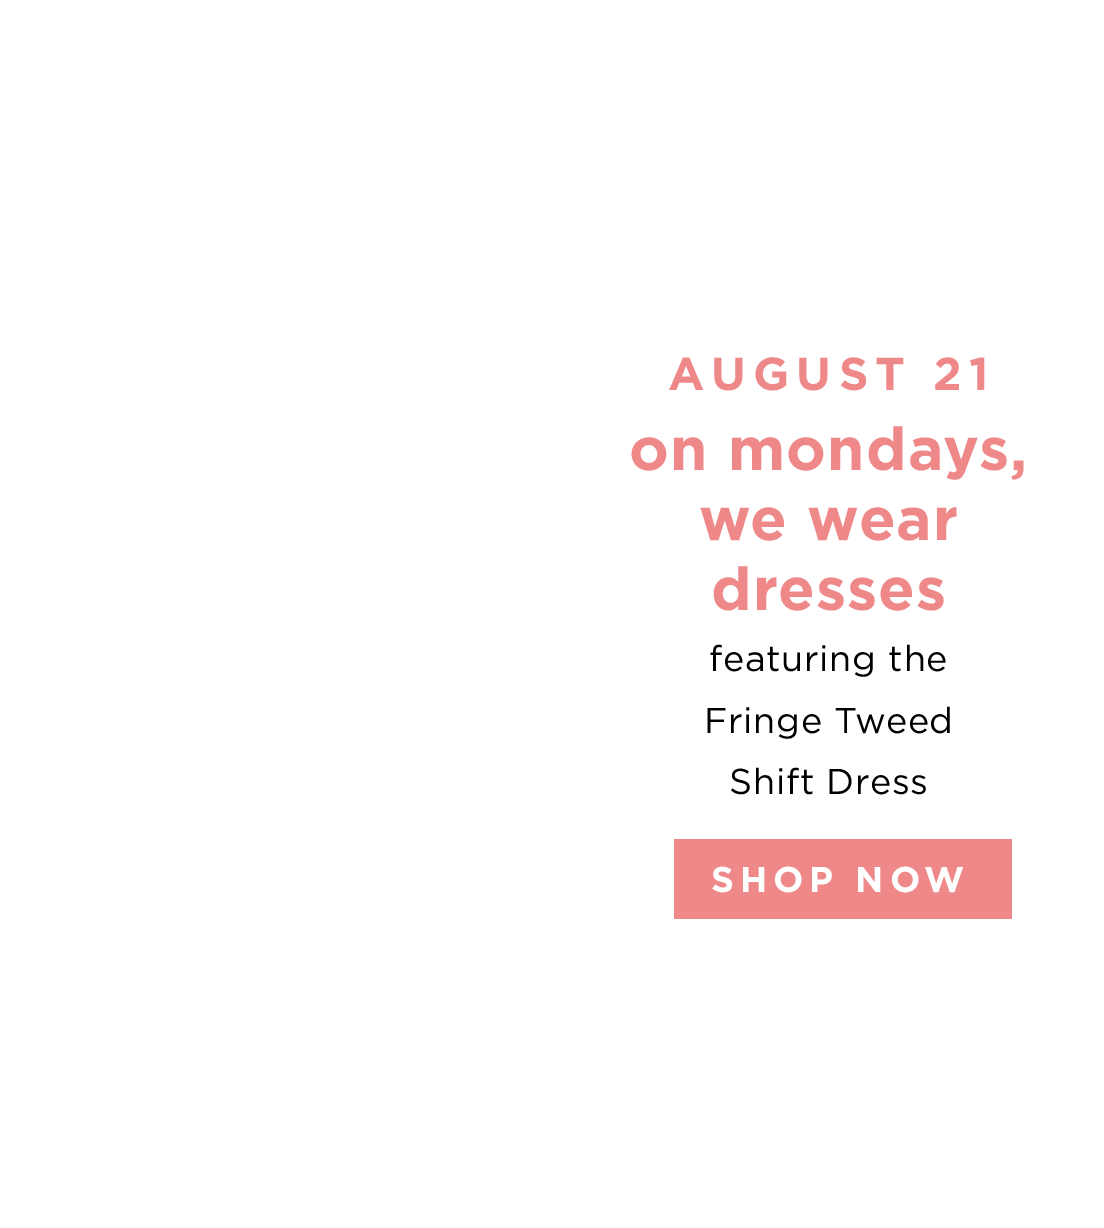 AUGUST 21 - SHOP NOW